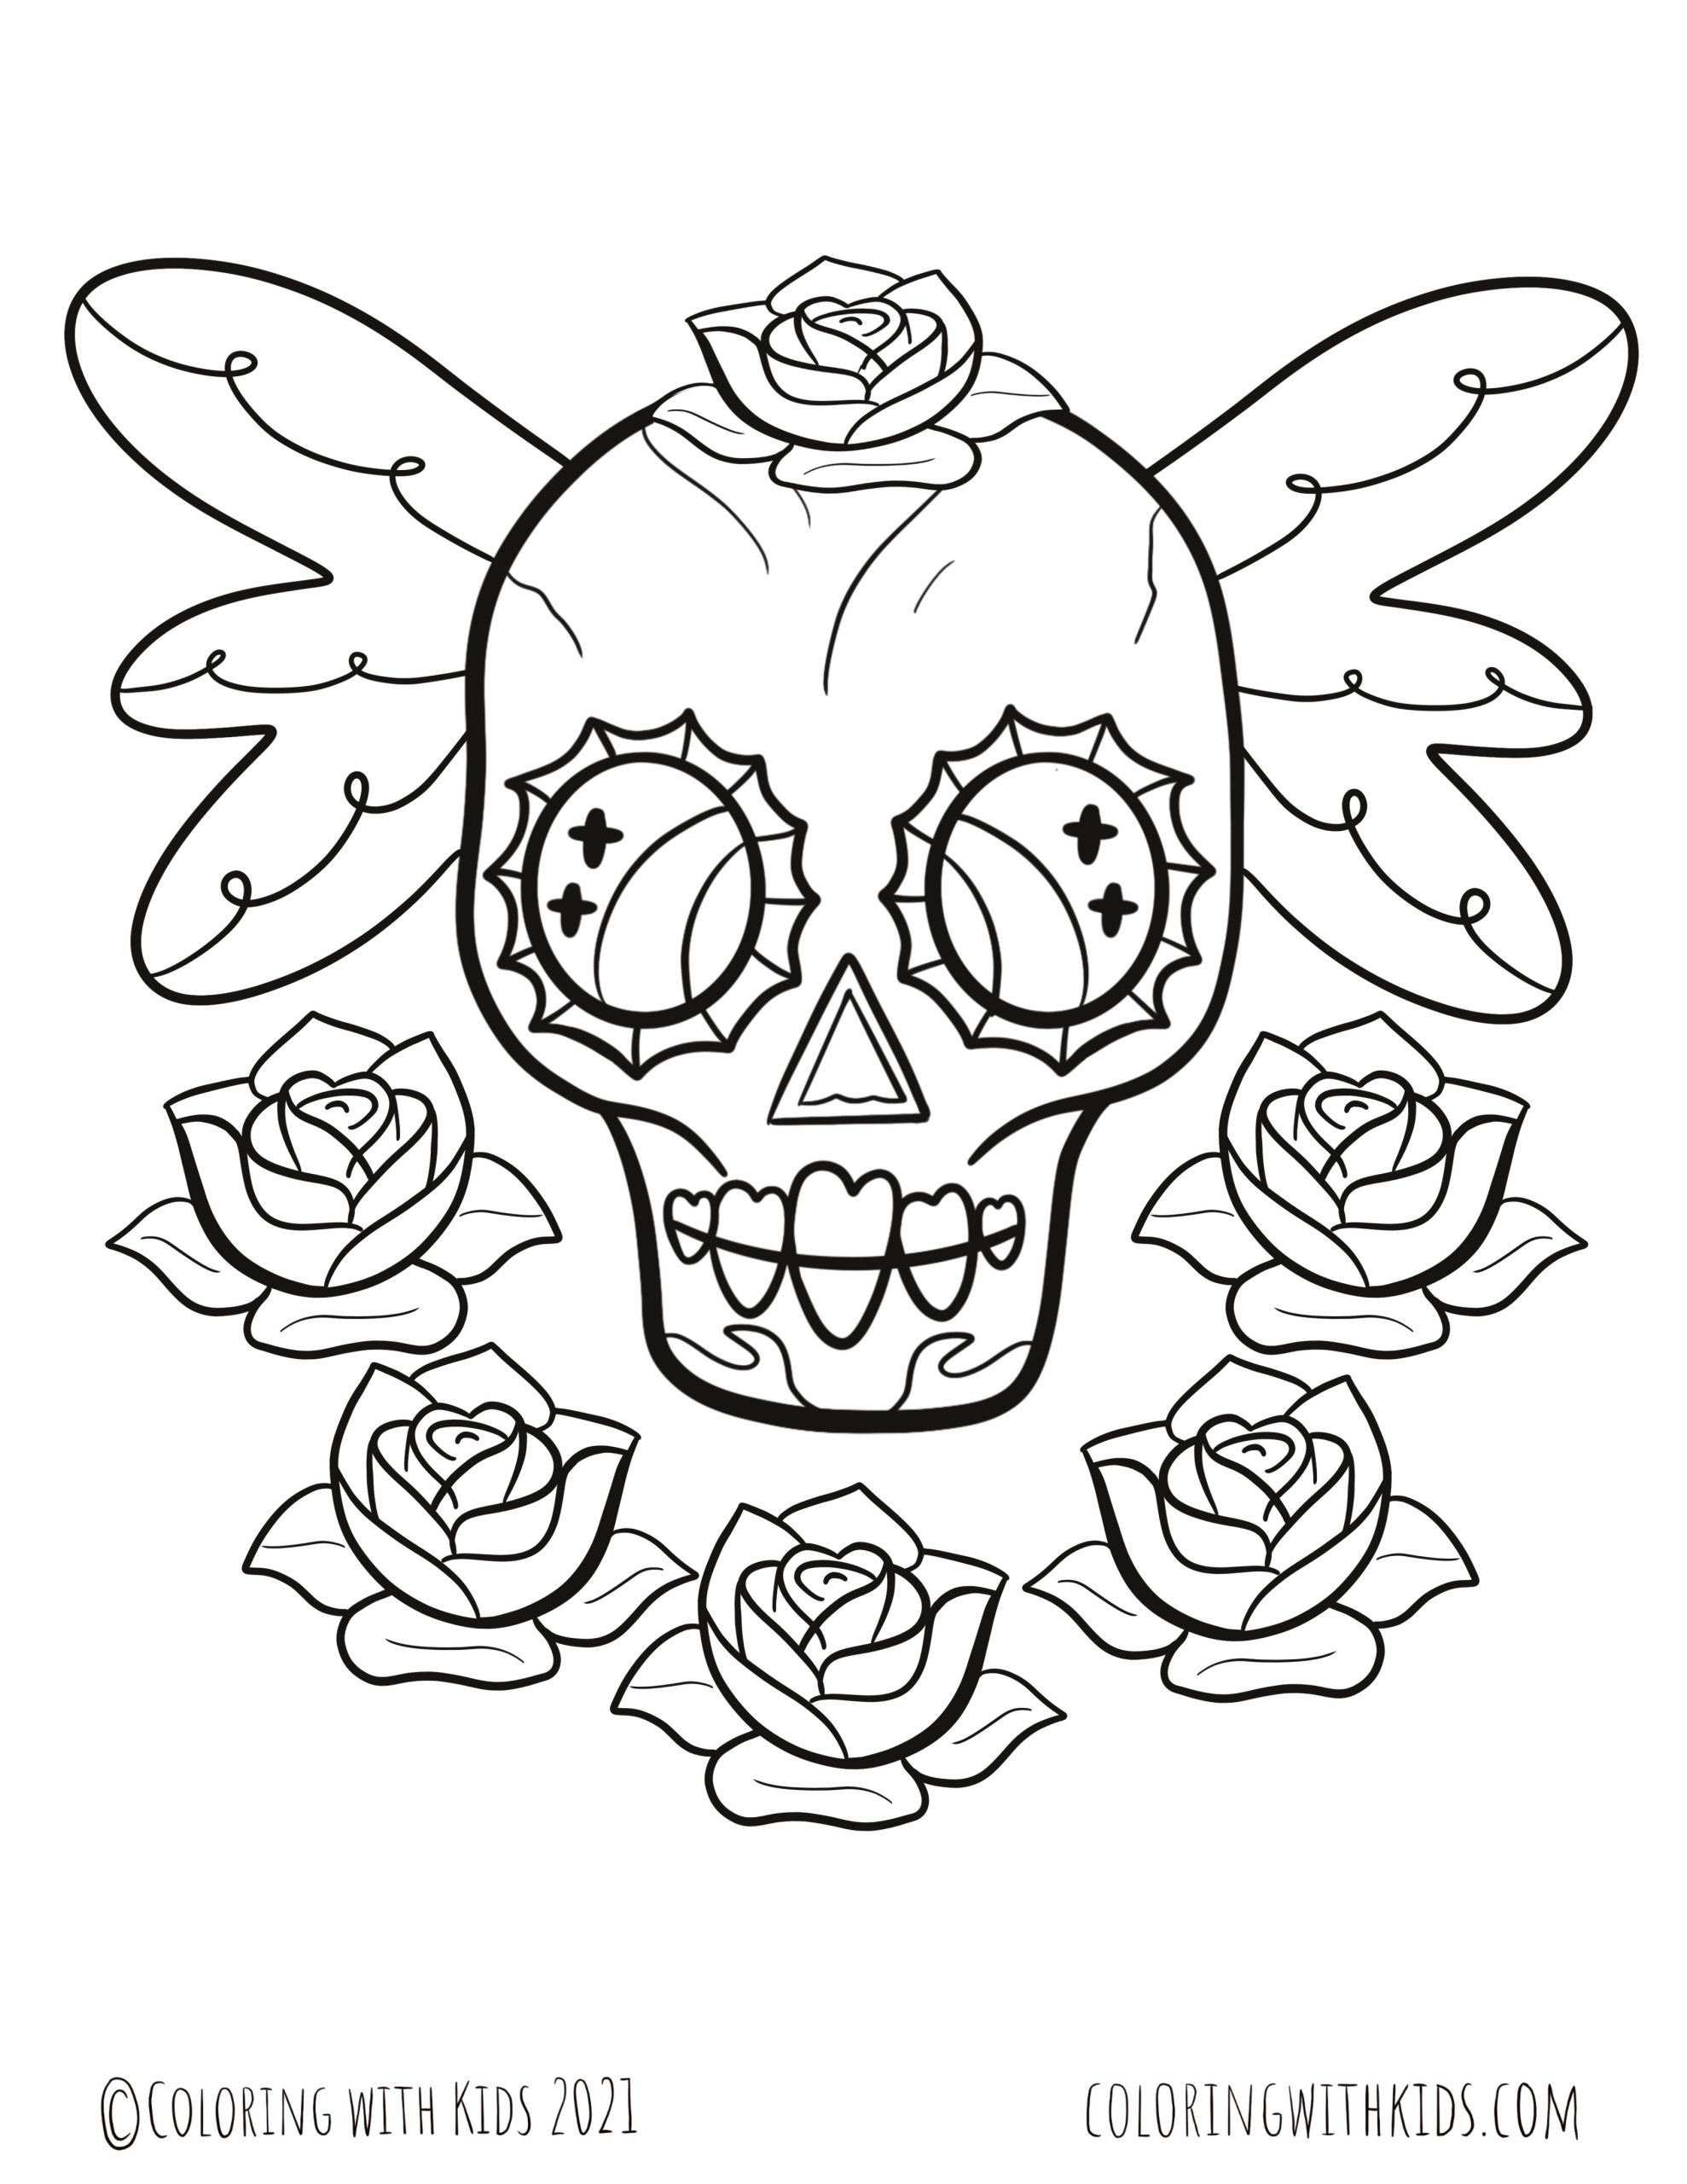 Rose And Skull Coloring Pages